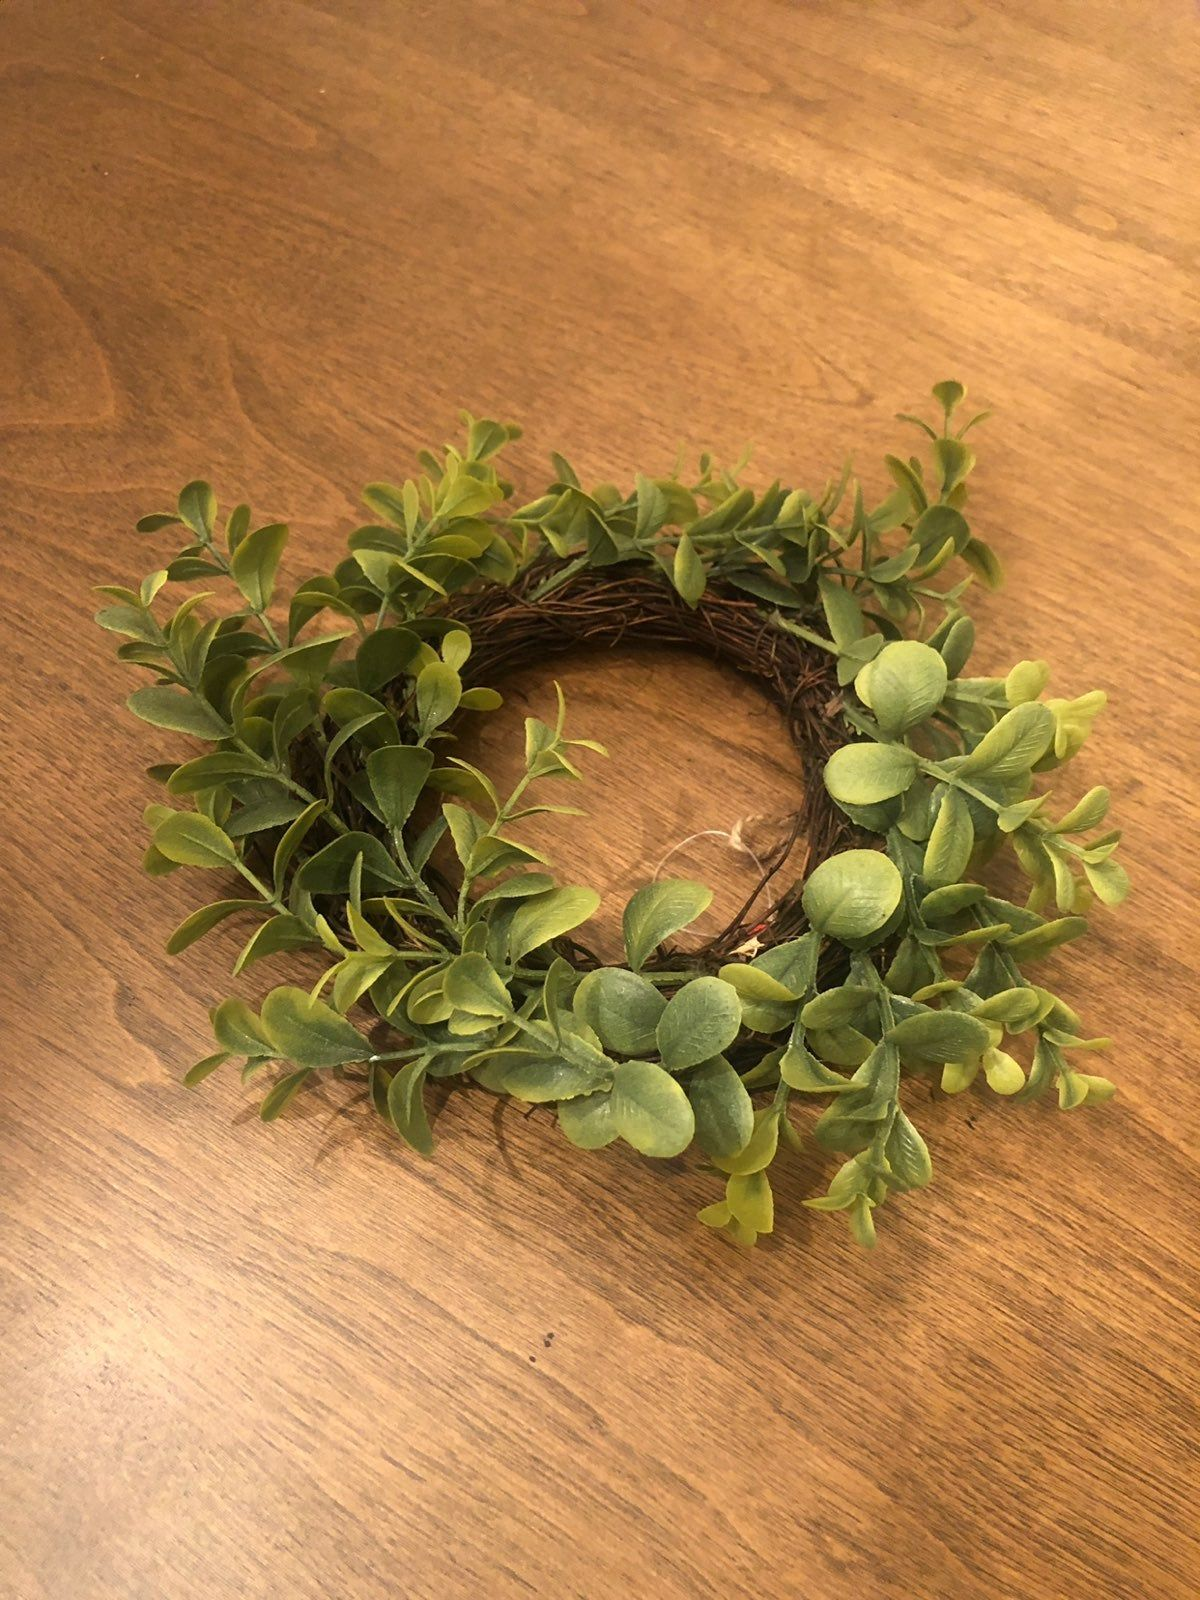 6 Small Boxwood Wreaths Farmhouse Style See Pictures For Size More Available Target Bullseye Dollar Sp Small Boxwood Wreath Boxwood Wreath Small Wreaths